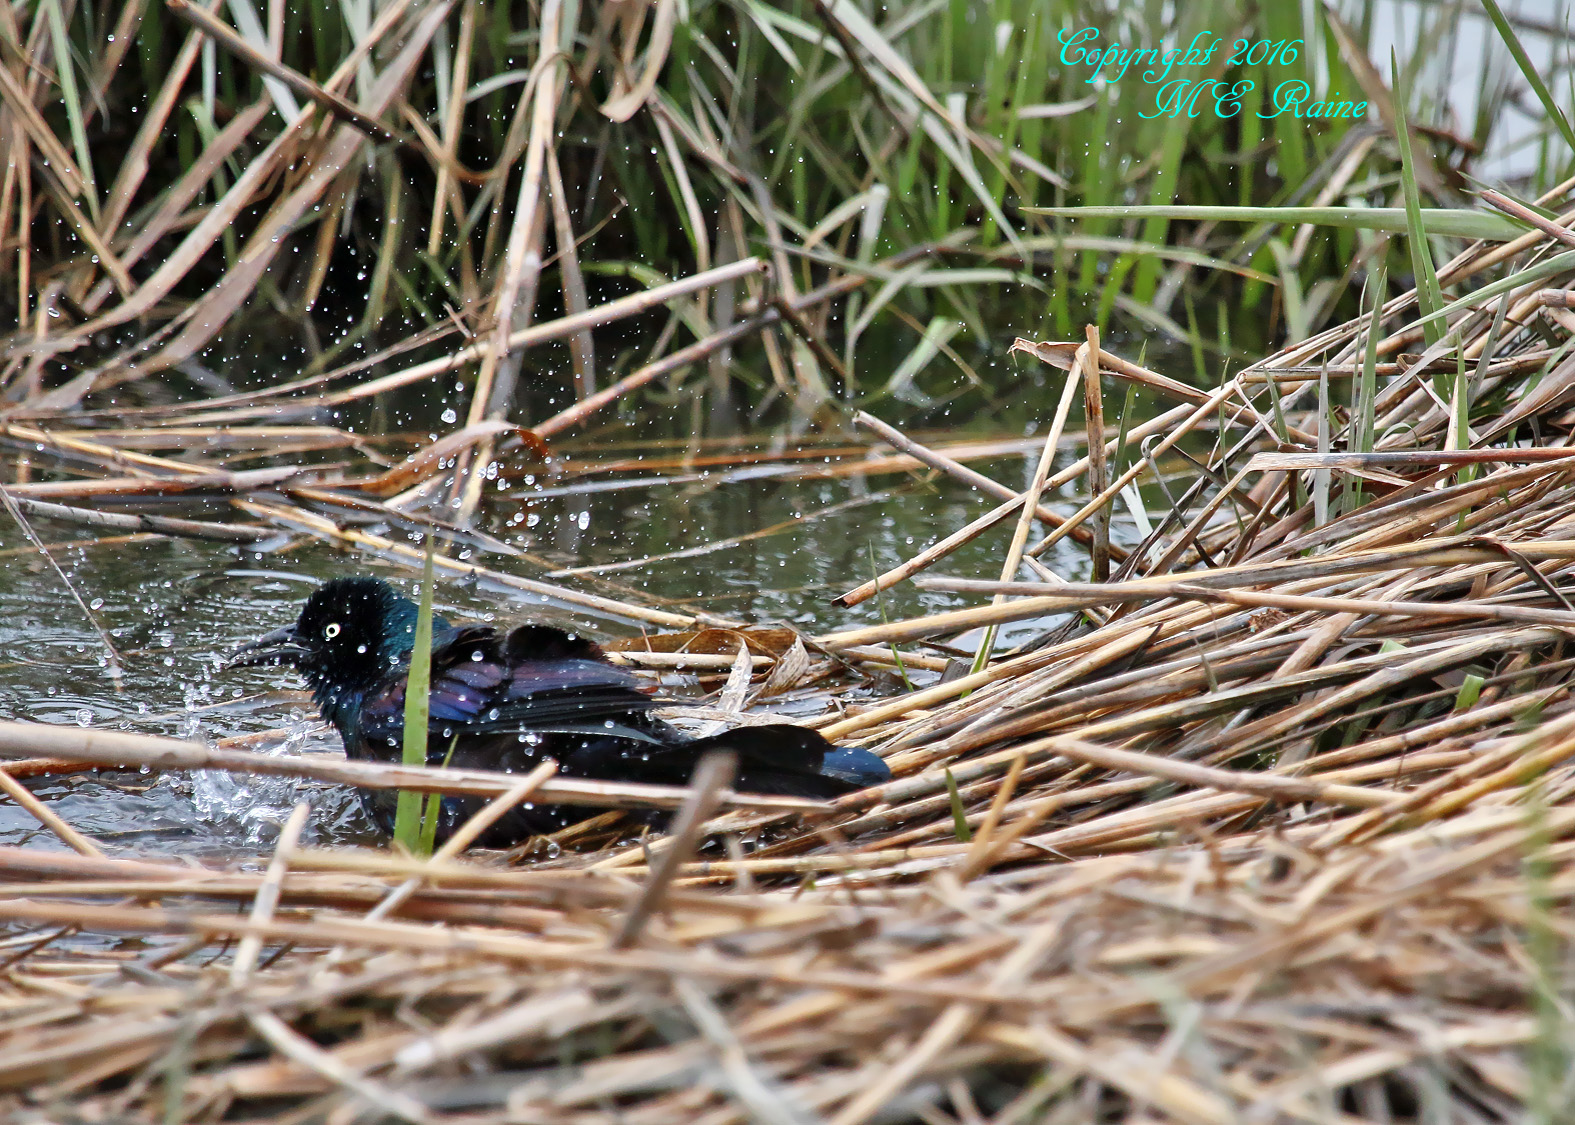 Grackle Common 009af MCM Mdwlnds NJ Bathing 042516 OK FLICKR